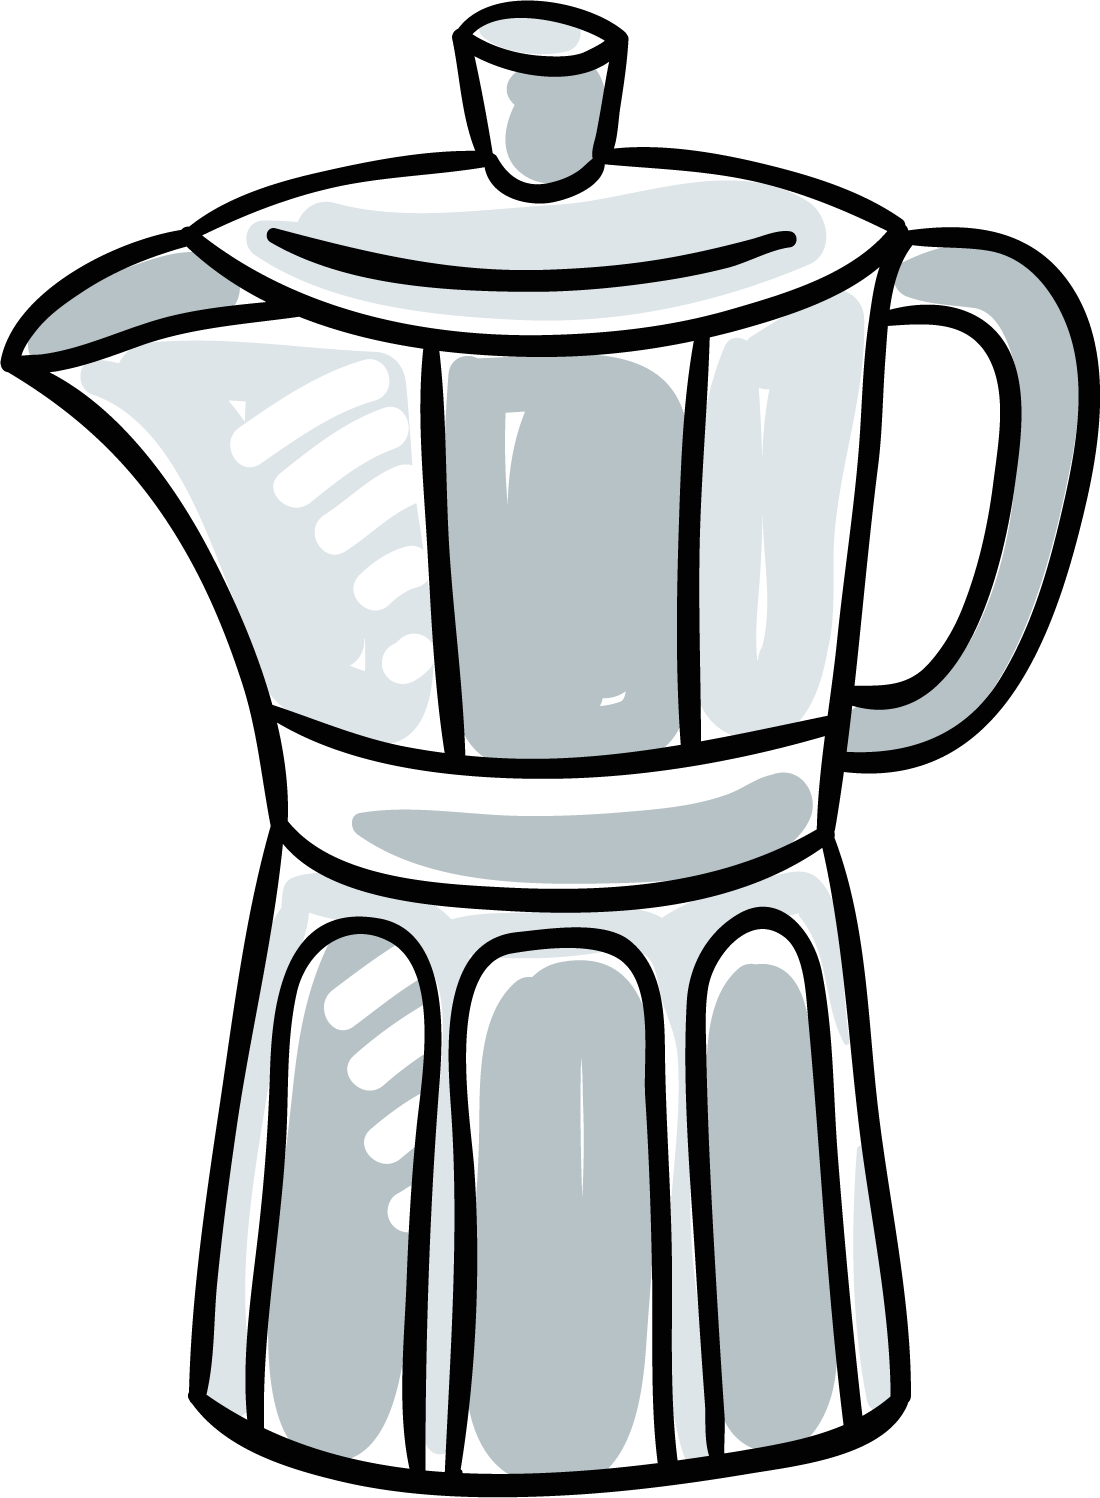 How To Make Stovetop Percolator Coffee The Ultimate Guide